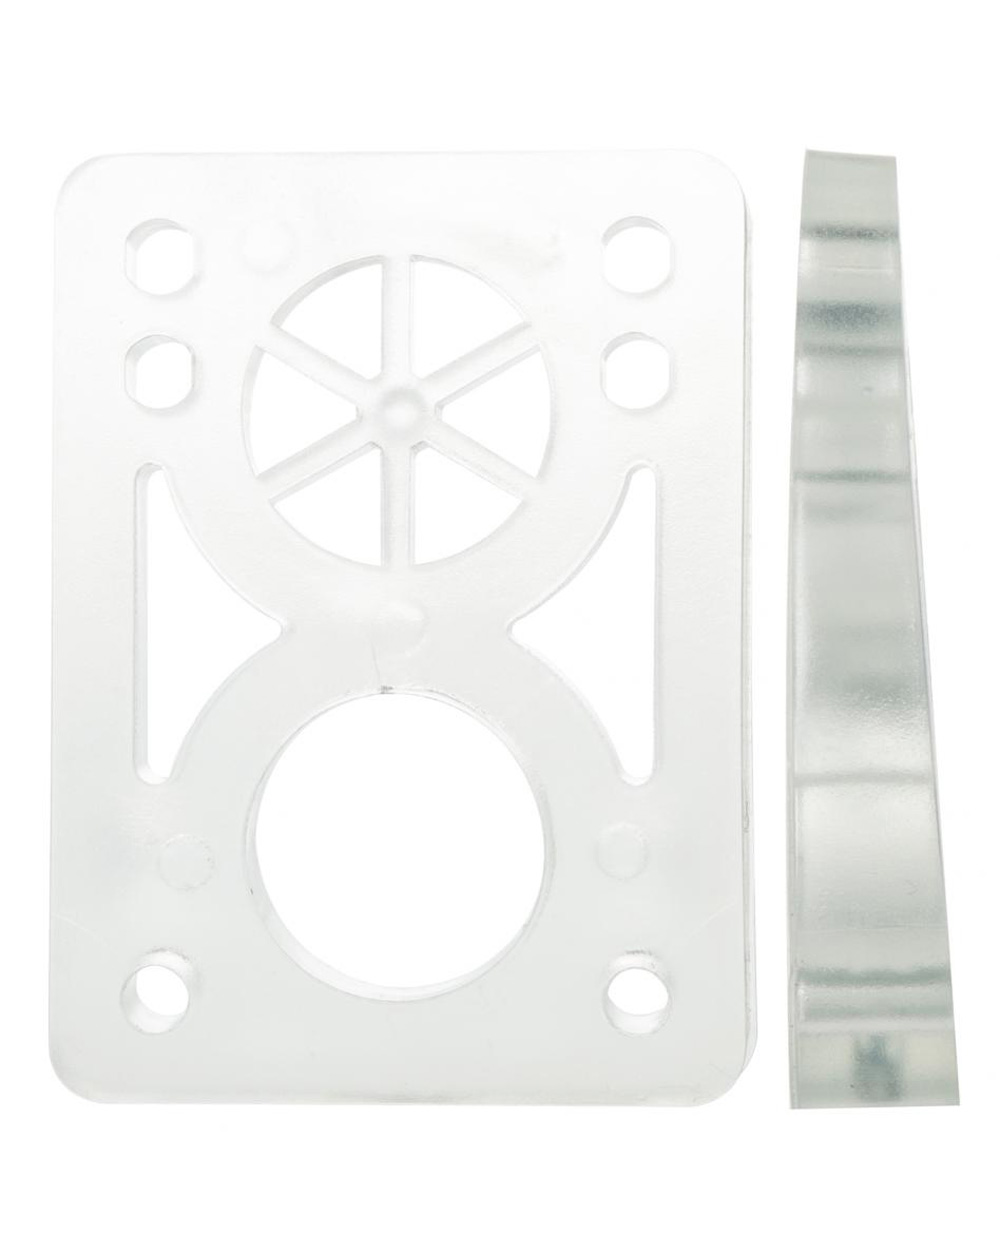 D-Street Soft Wedge 8 to 14 mm Risers Clear pack of 2